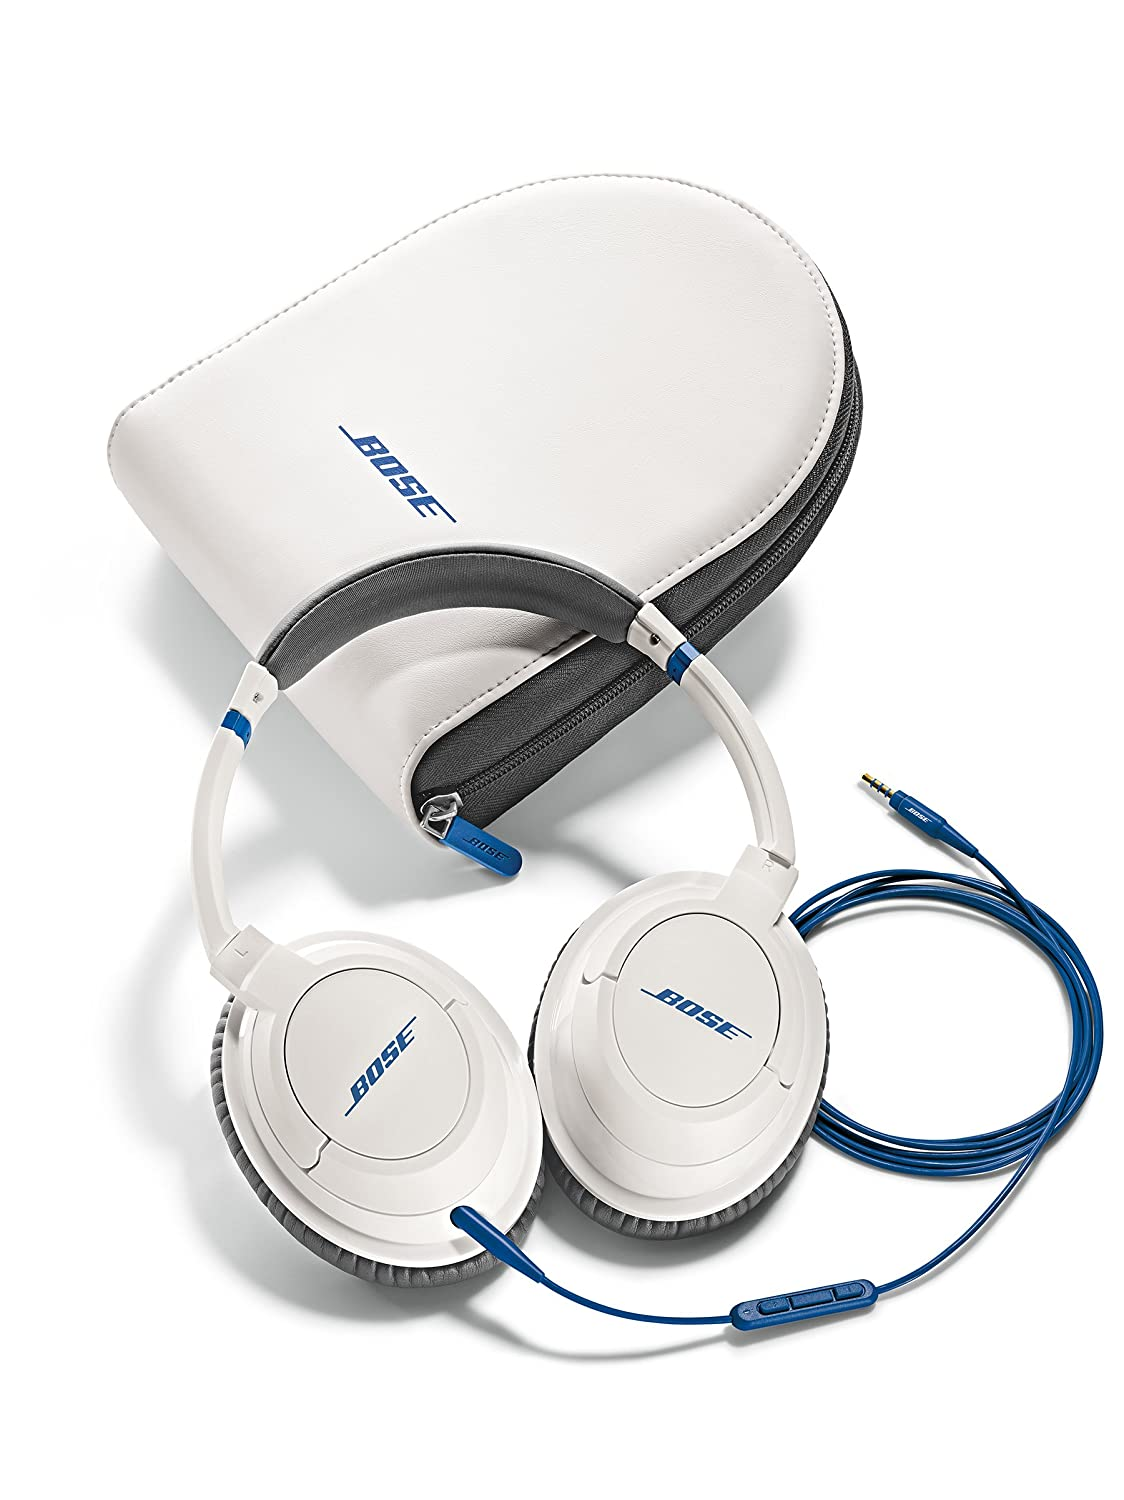 New - Bose SoundTrue around-ear headphones - White Image